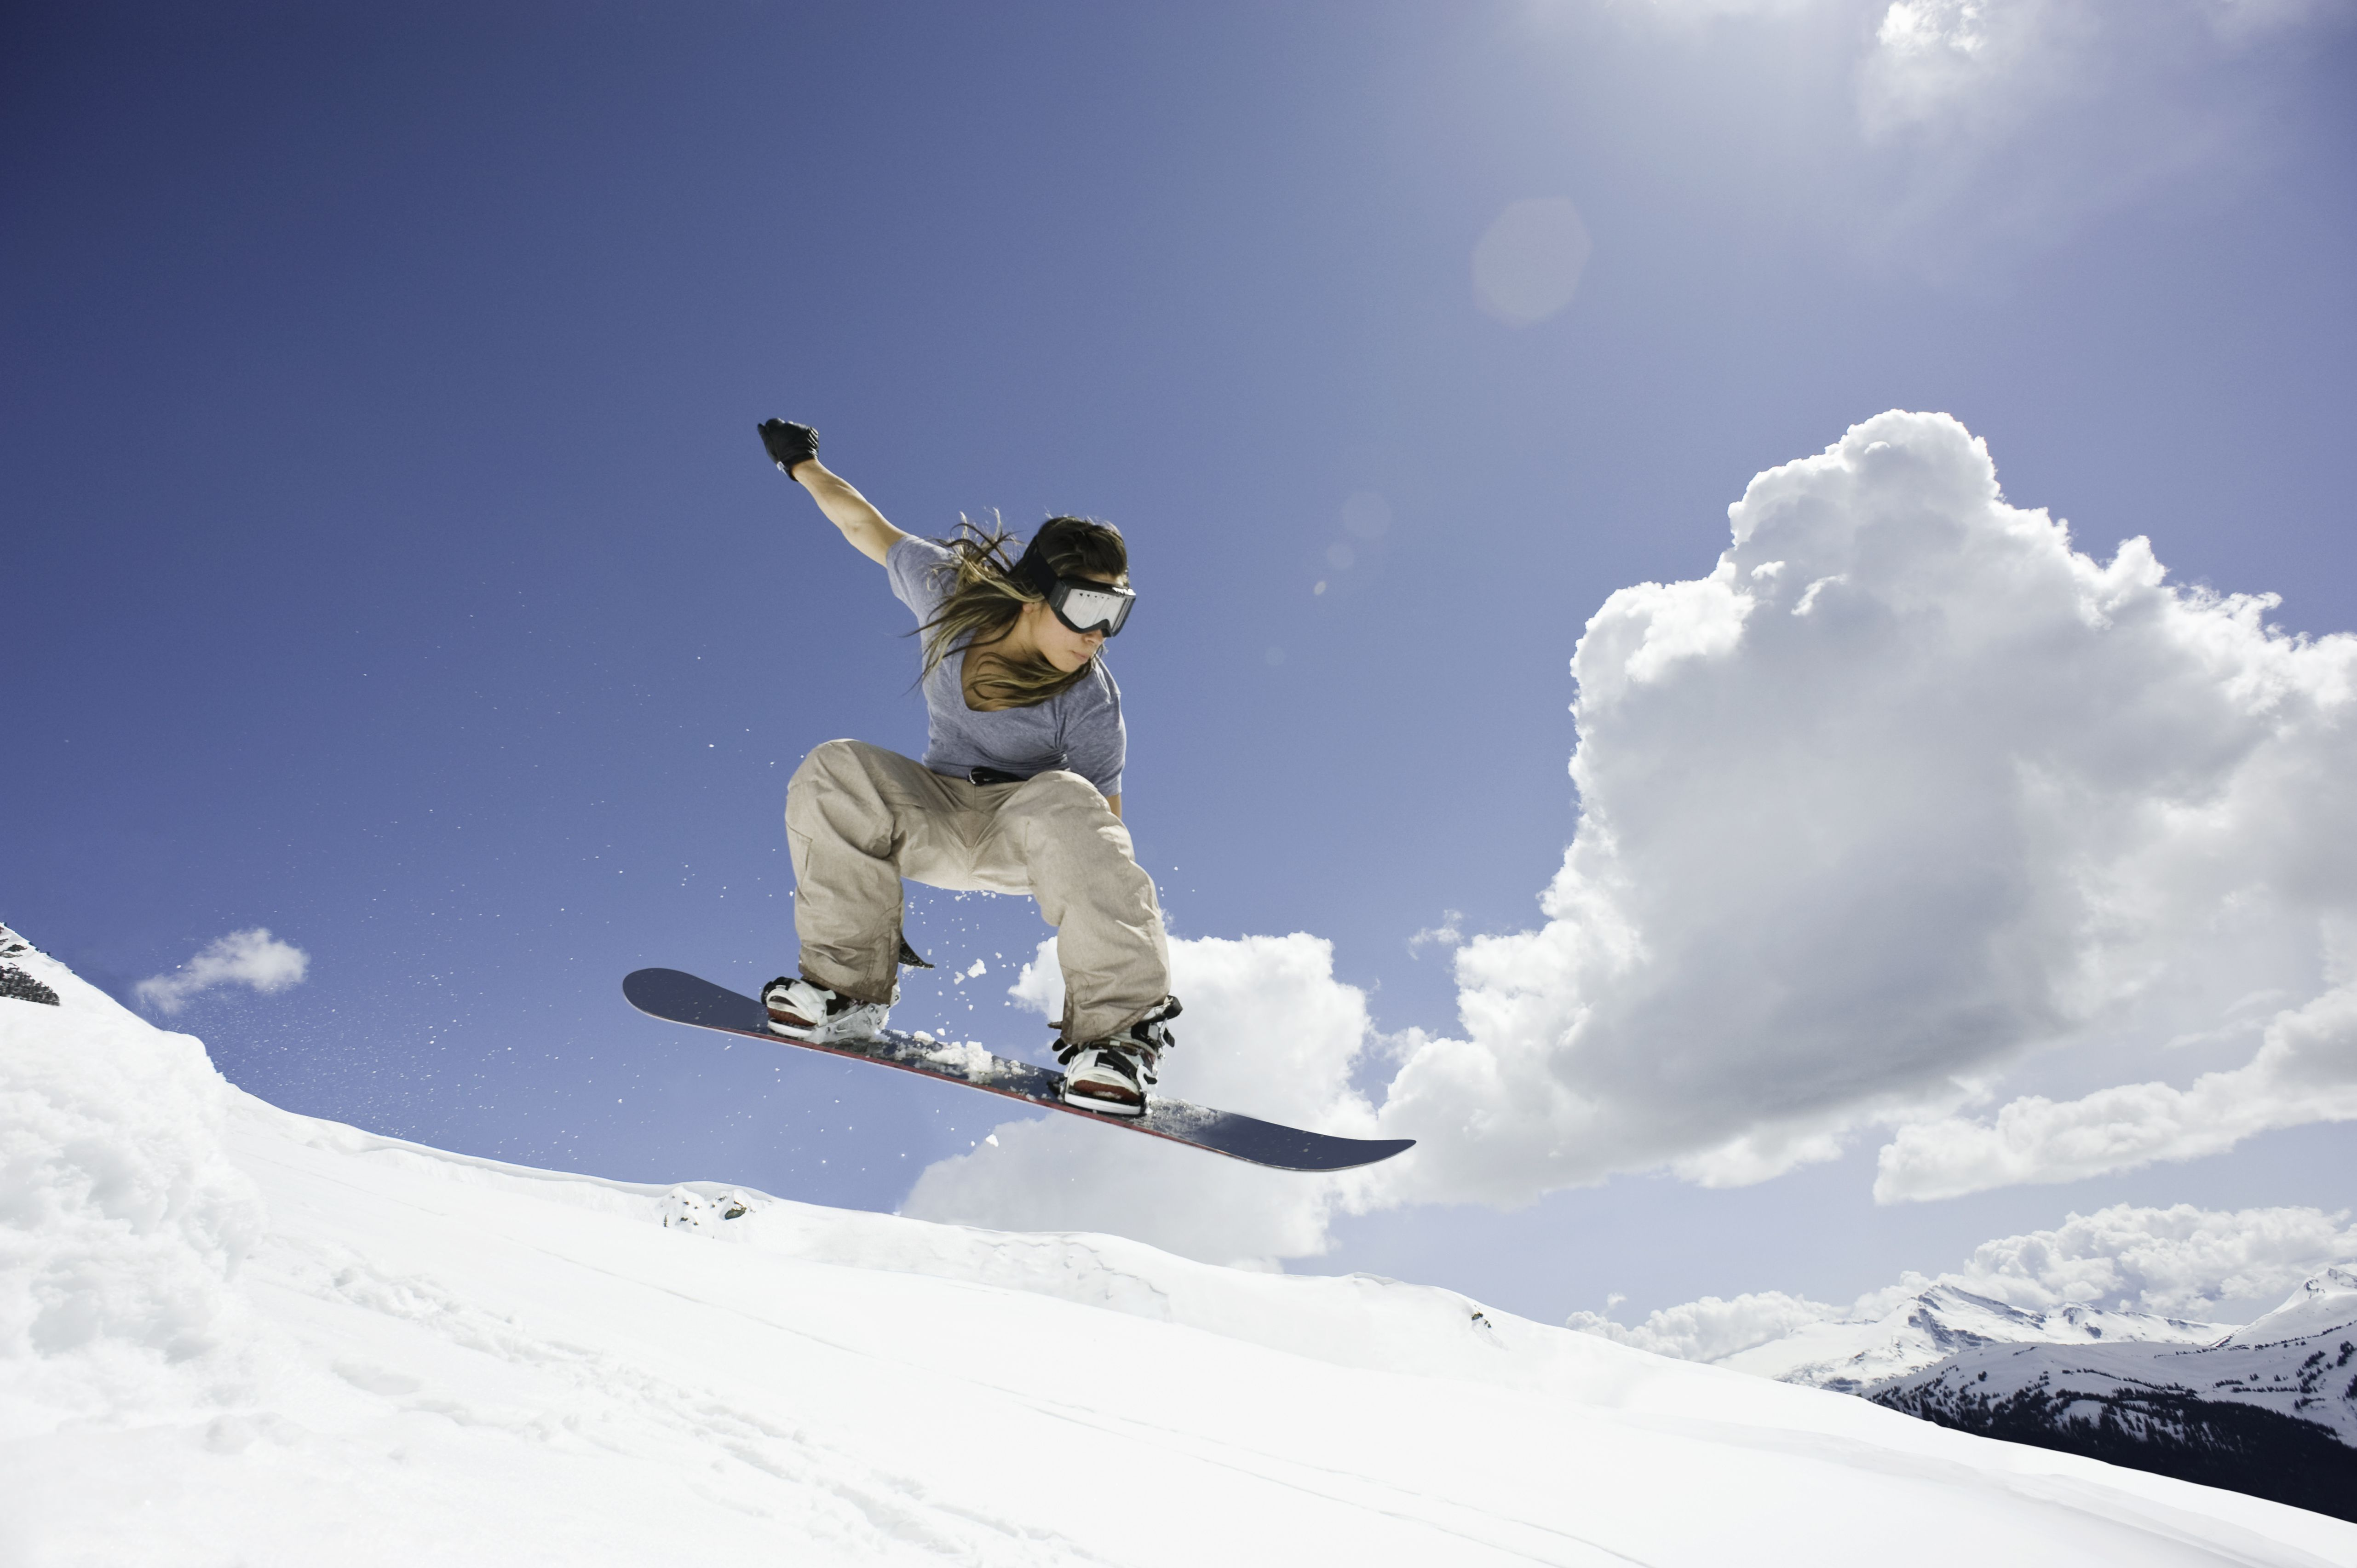 Intro to Snowboarding - Lessons, Equipment and Advice